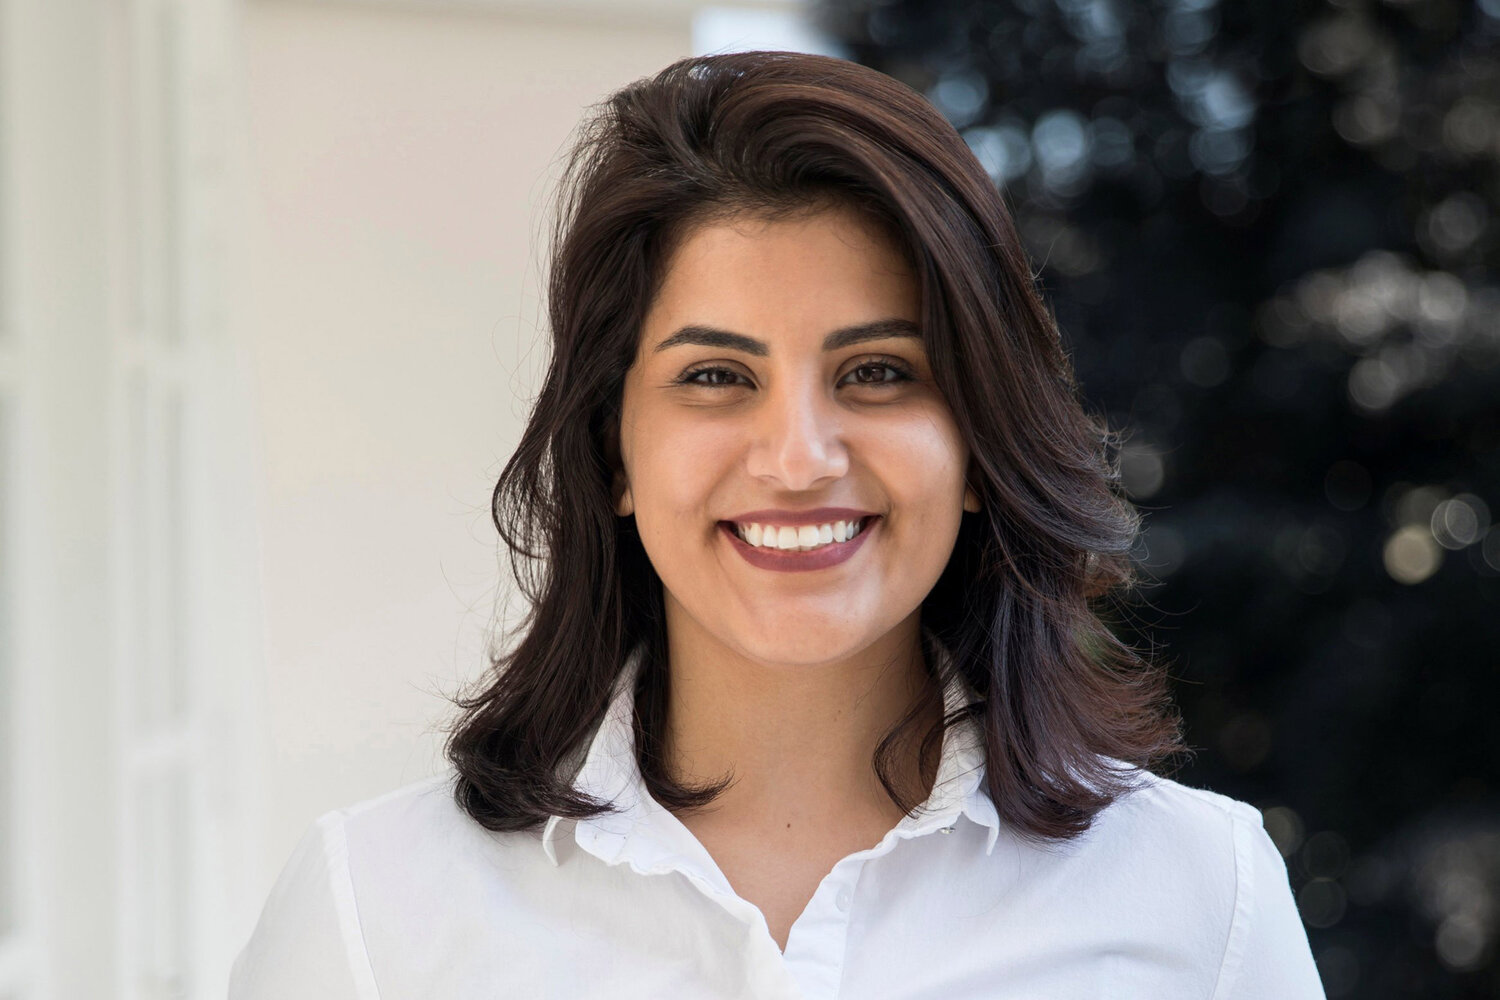 #110 Fighting for Freedom: Lina Al-Hathloul Speaks About Her Sister Loujain's Imprisonment